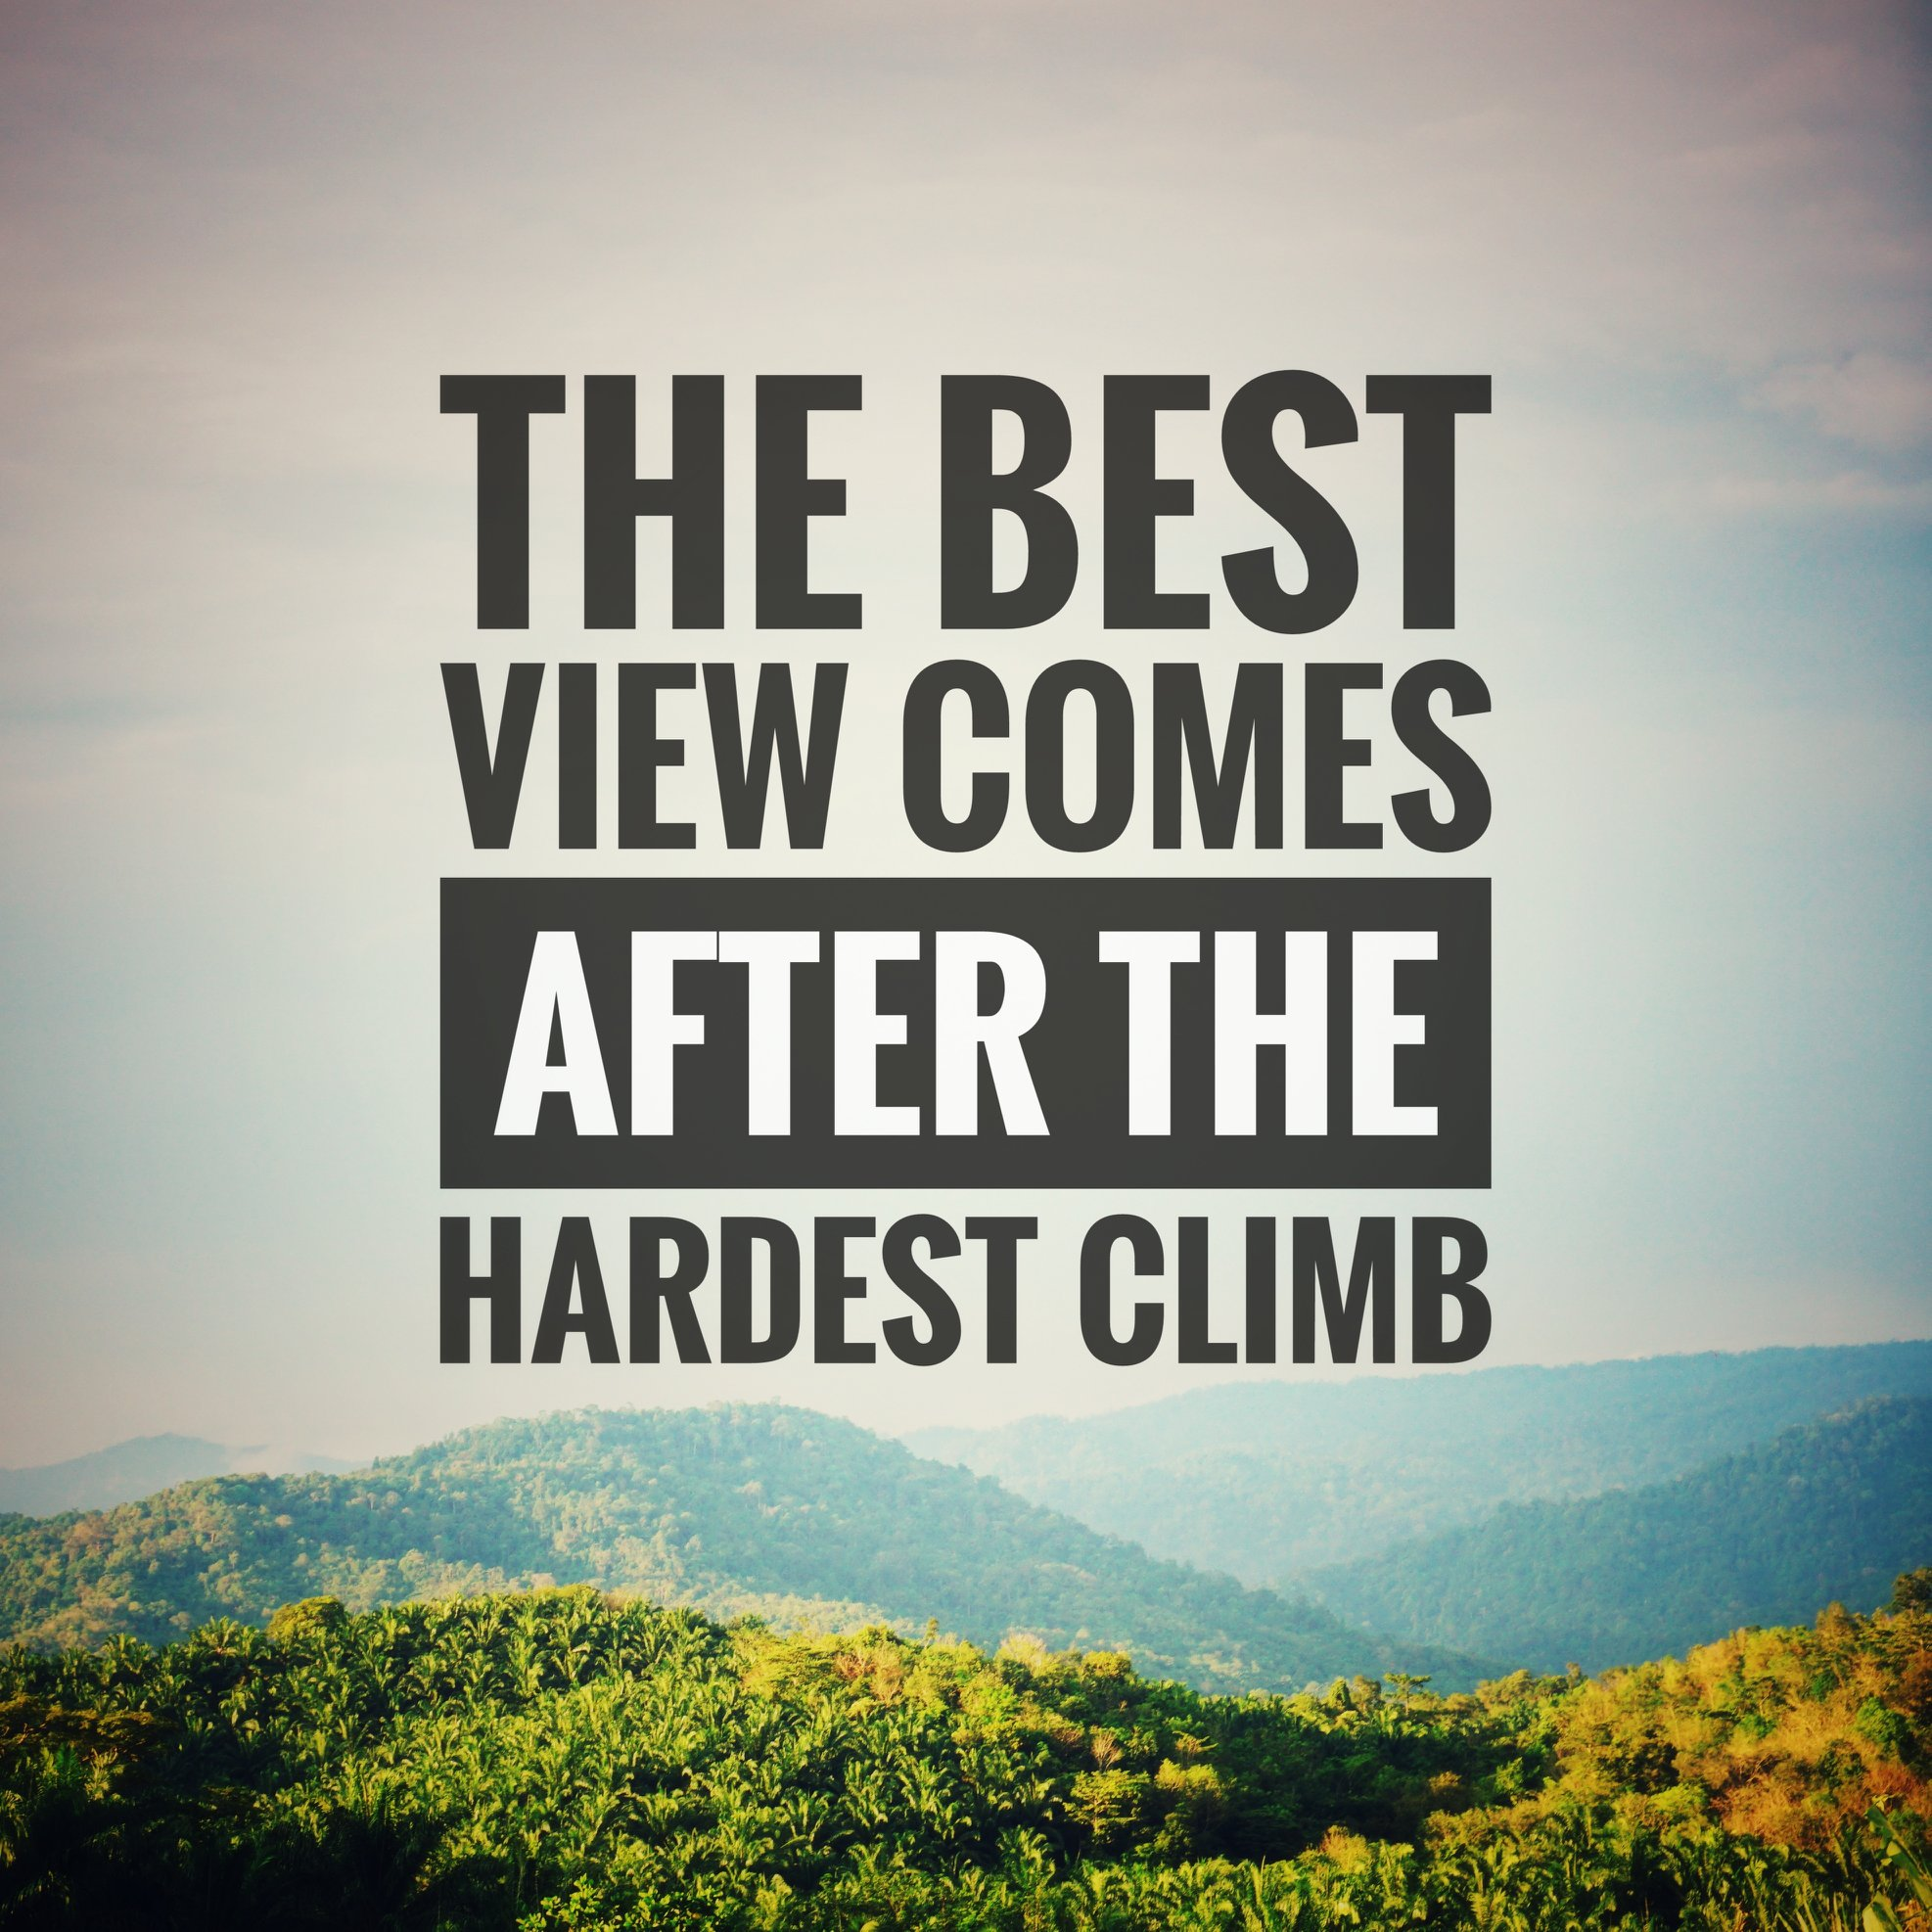 The best view comes after the hardest